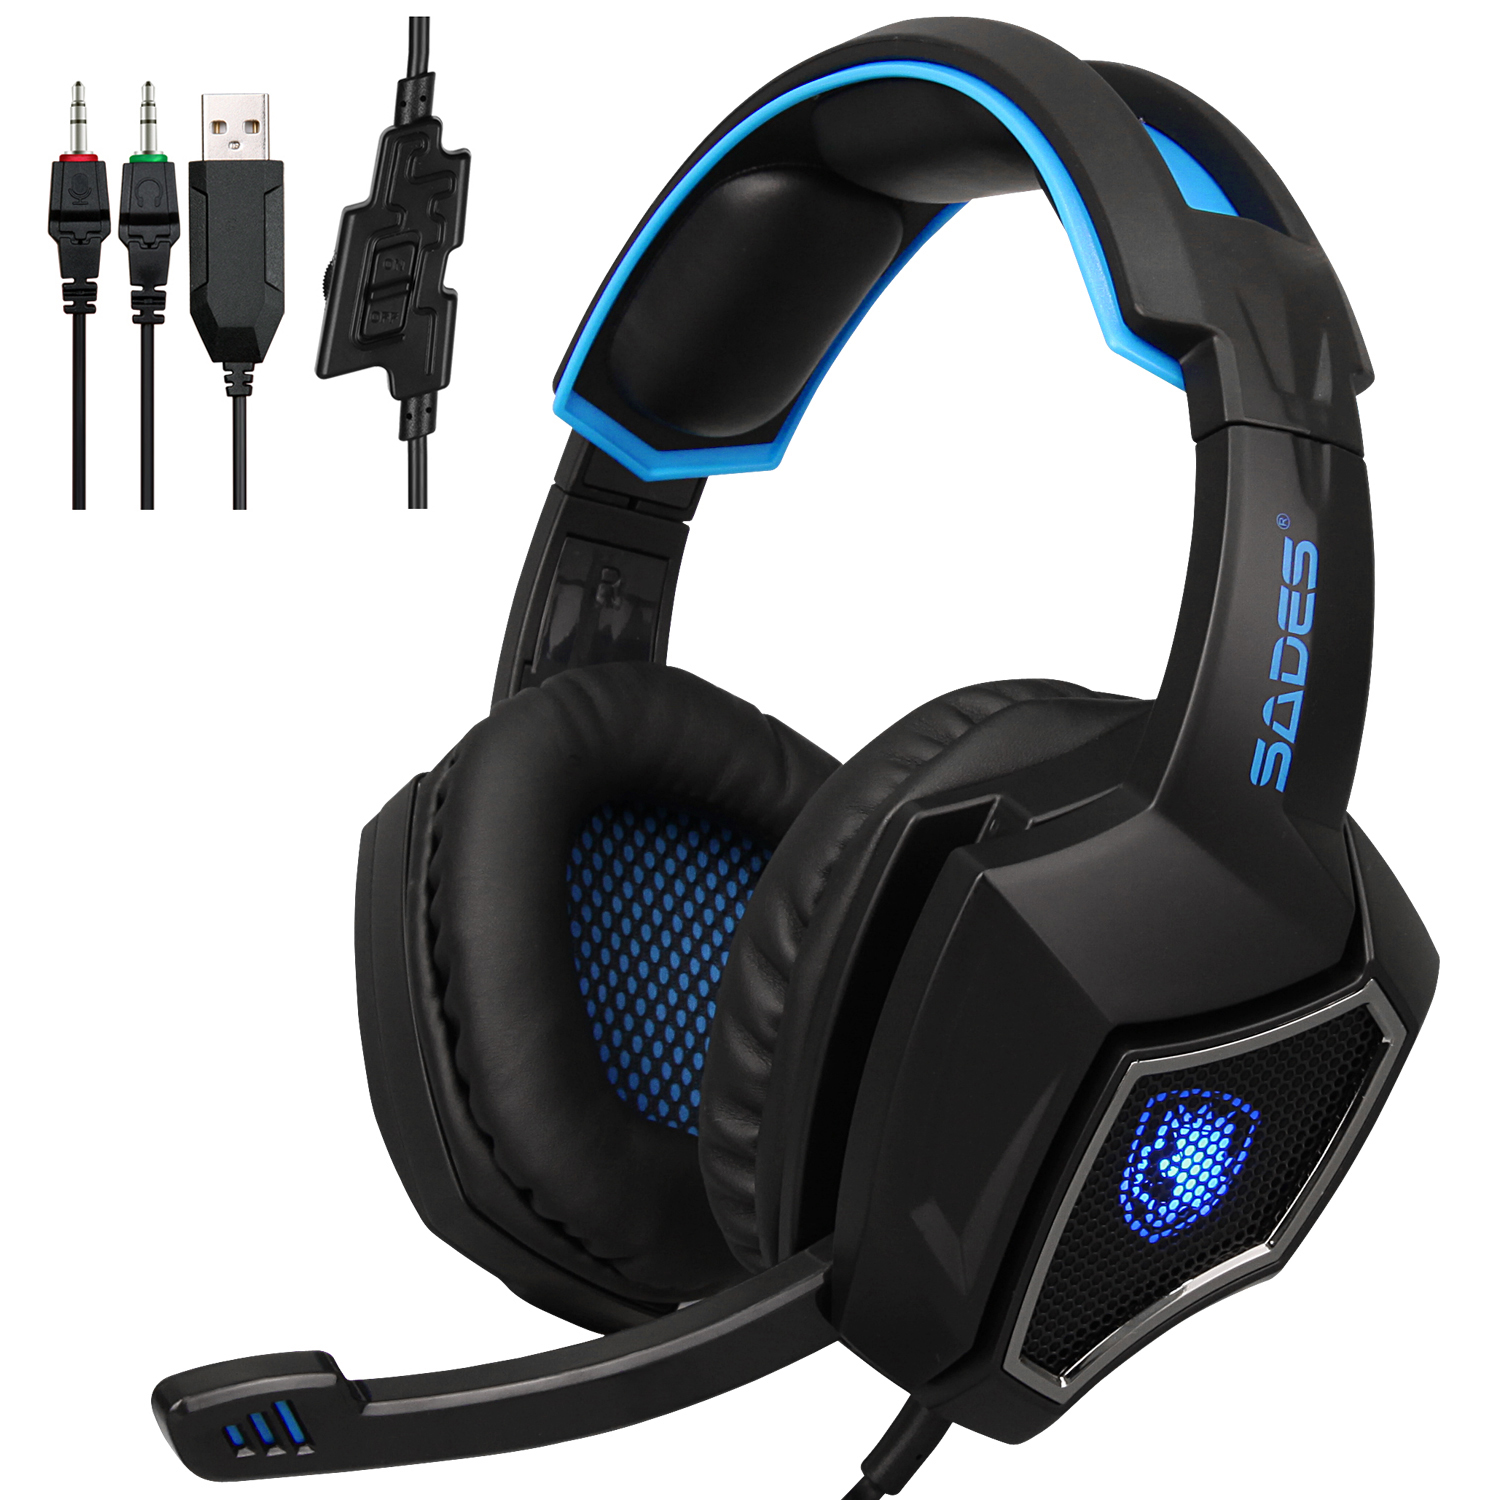 SADES Spirit Wolf Gaming Headset 3.5mm W/ MIC Headphone for PC Mobile Phone Blue